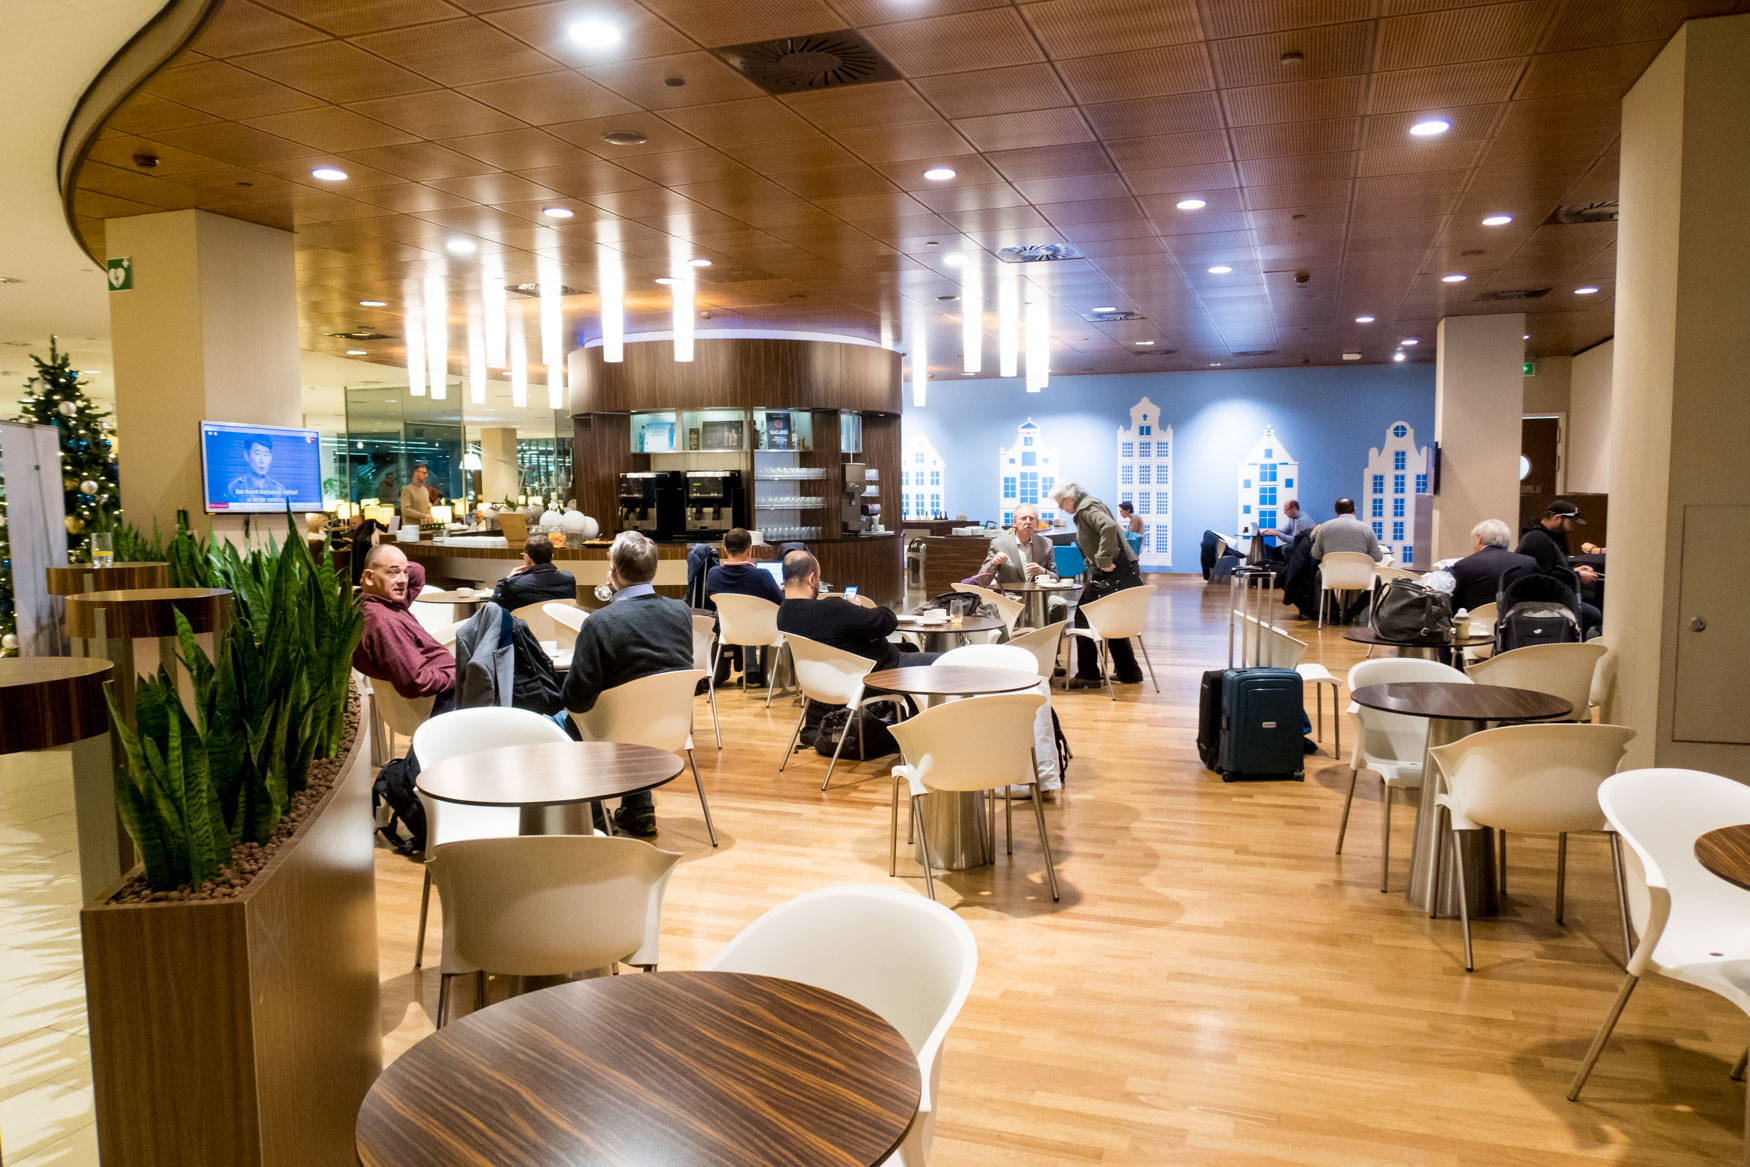 KLM Crown Lounge Amsterdam Snack Area